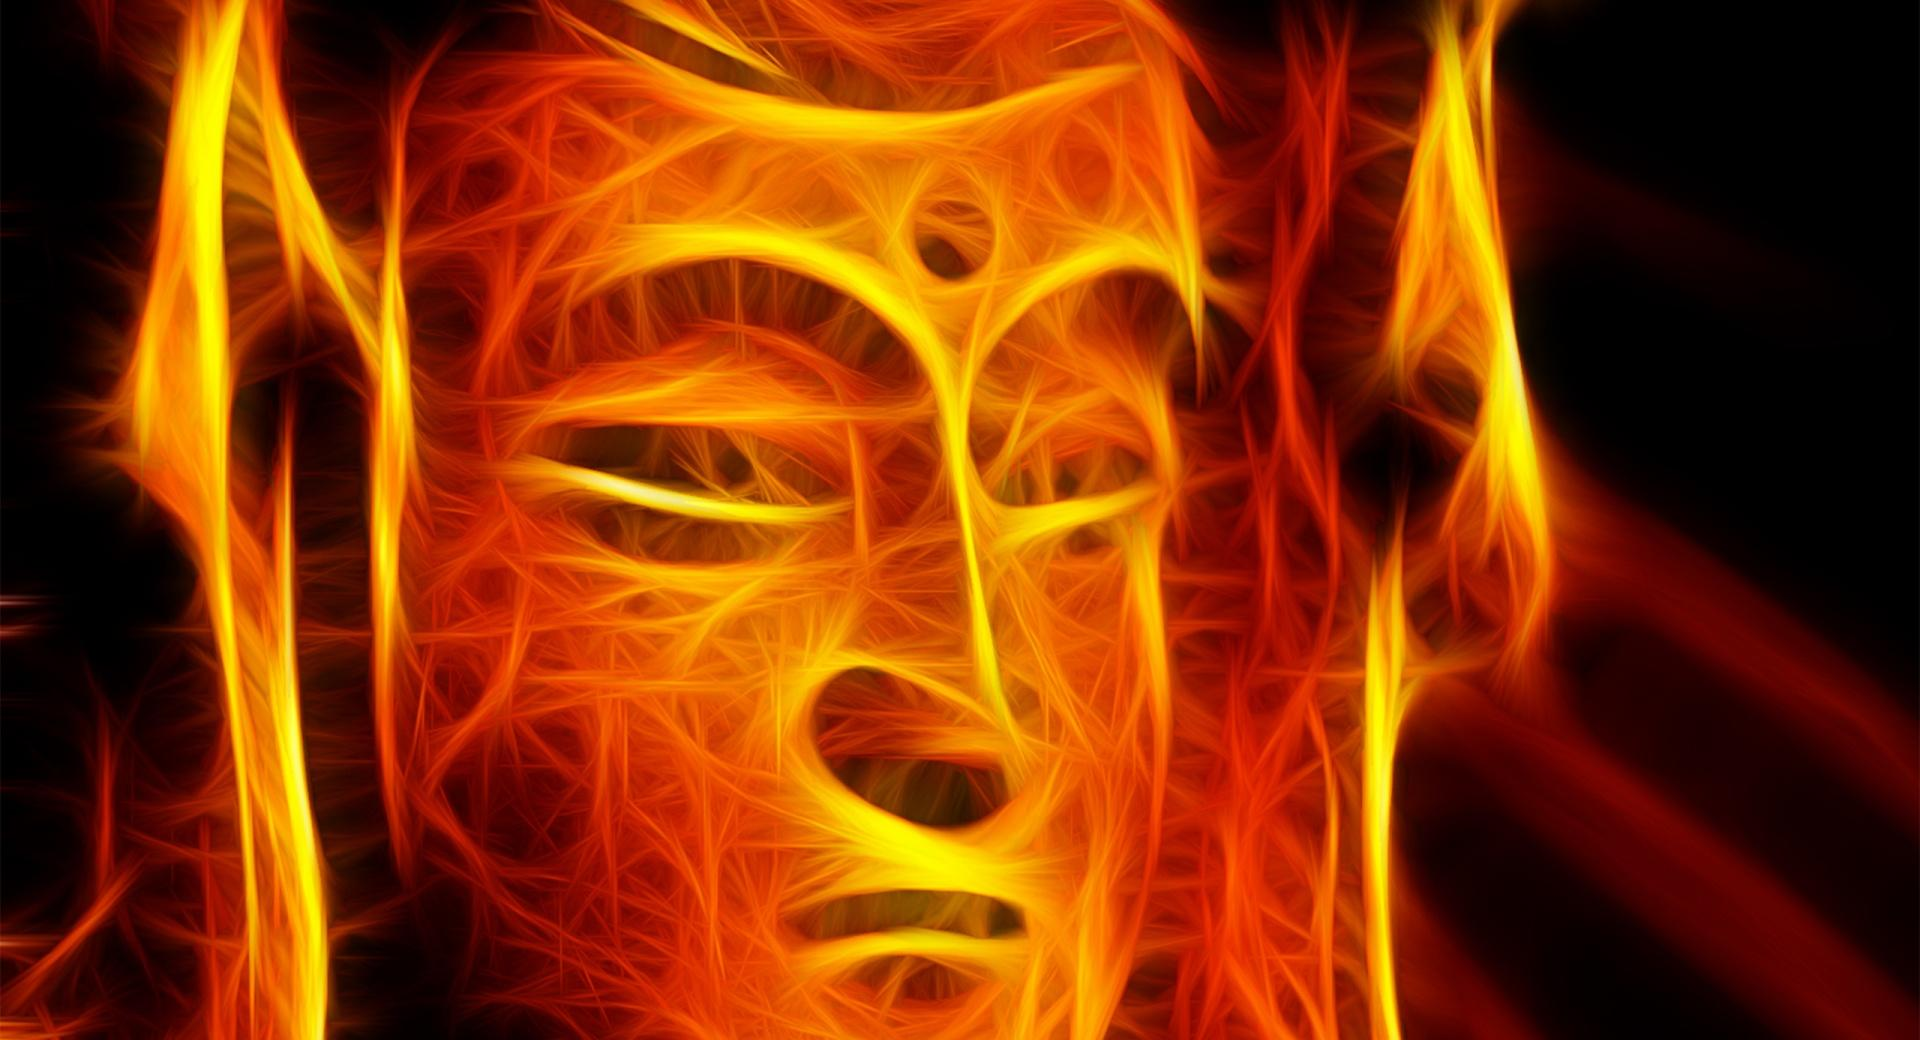 Burning Warrior wallpapers HD quality